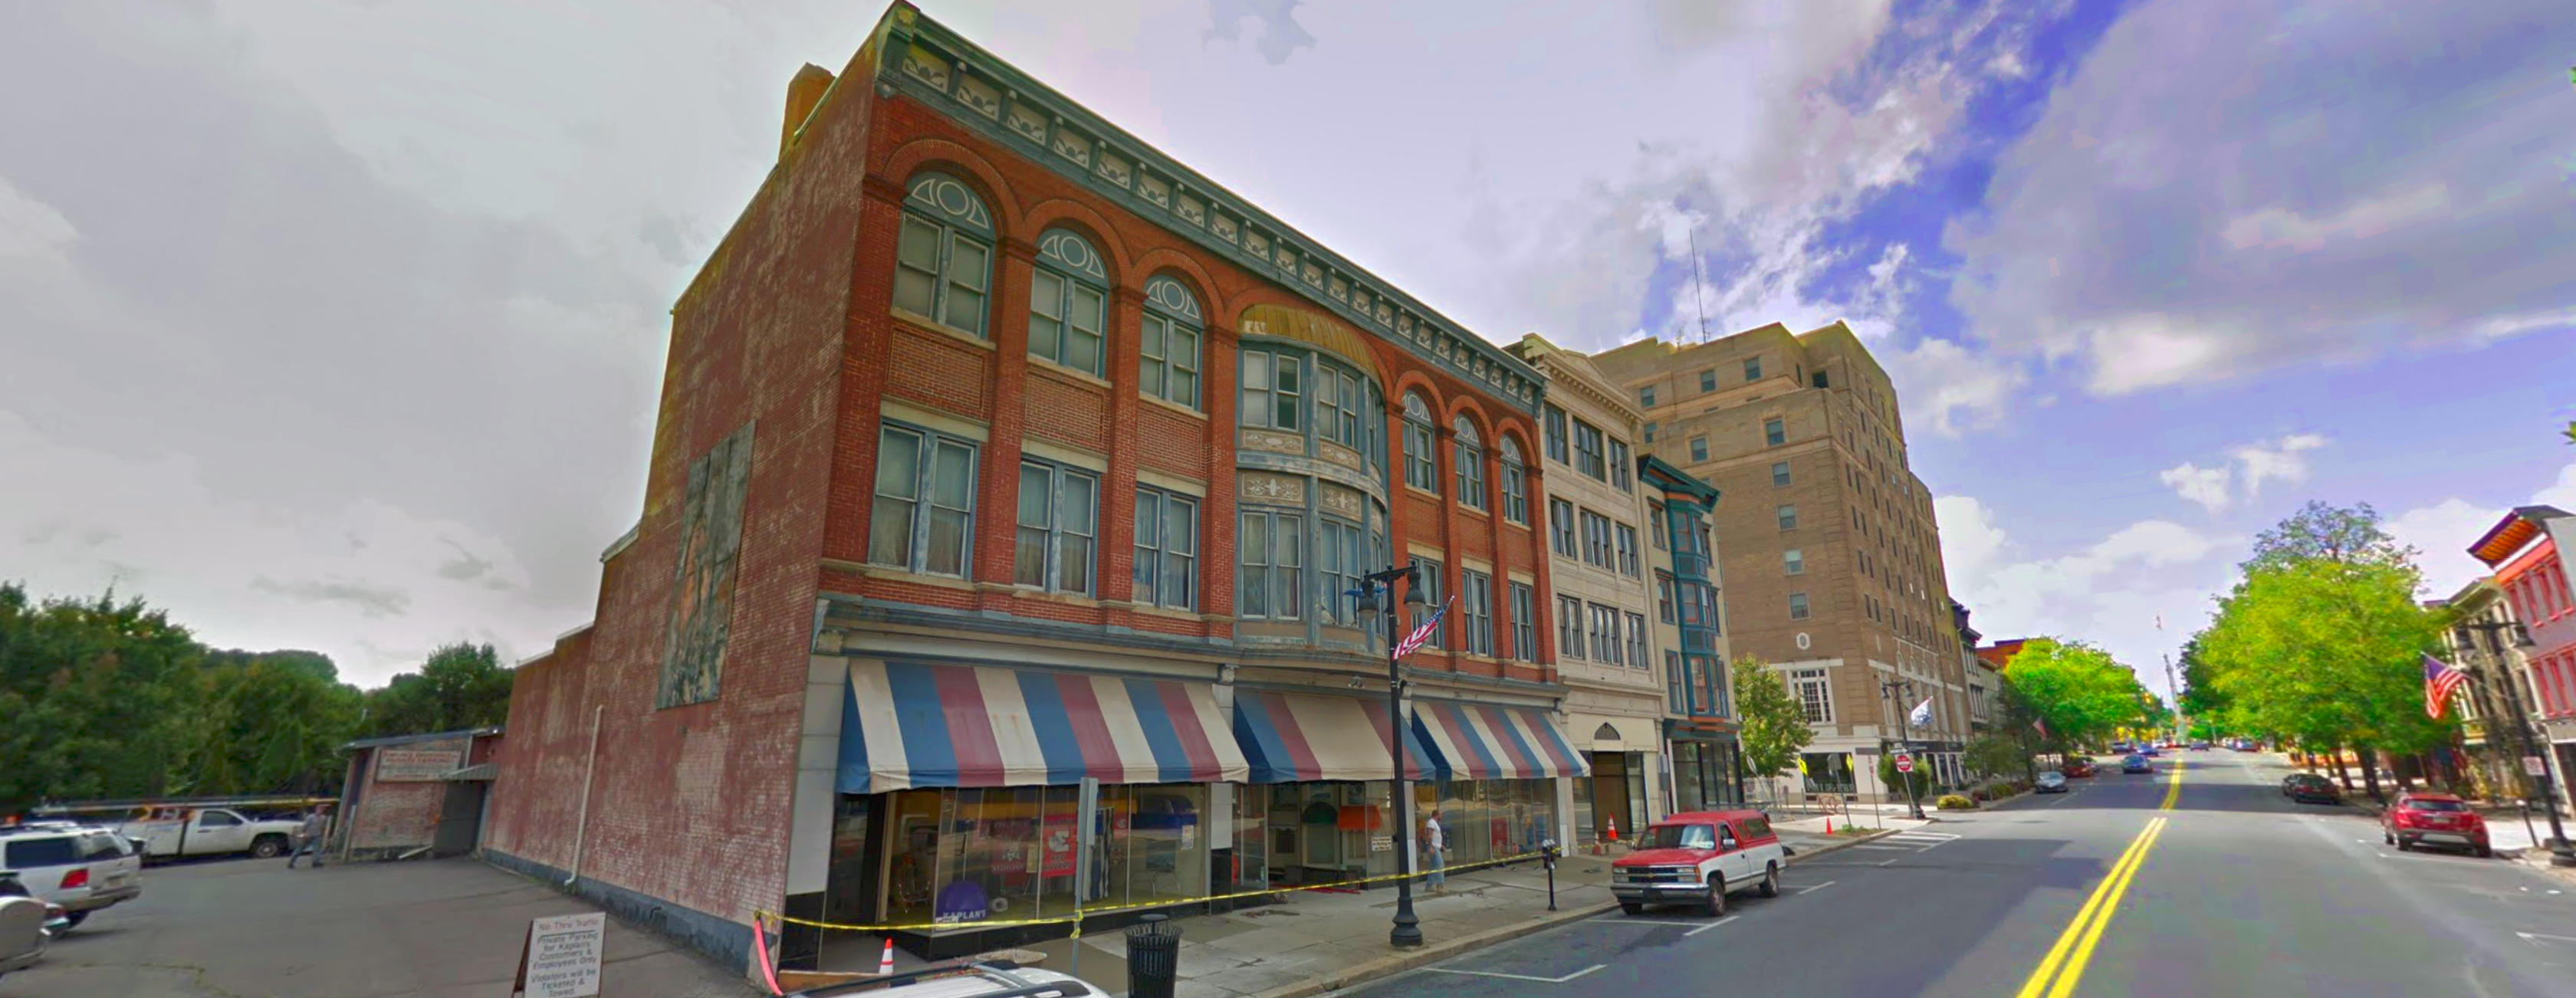 Easton Historic District Commission moves forward with 2 major development plans